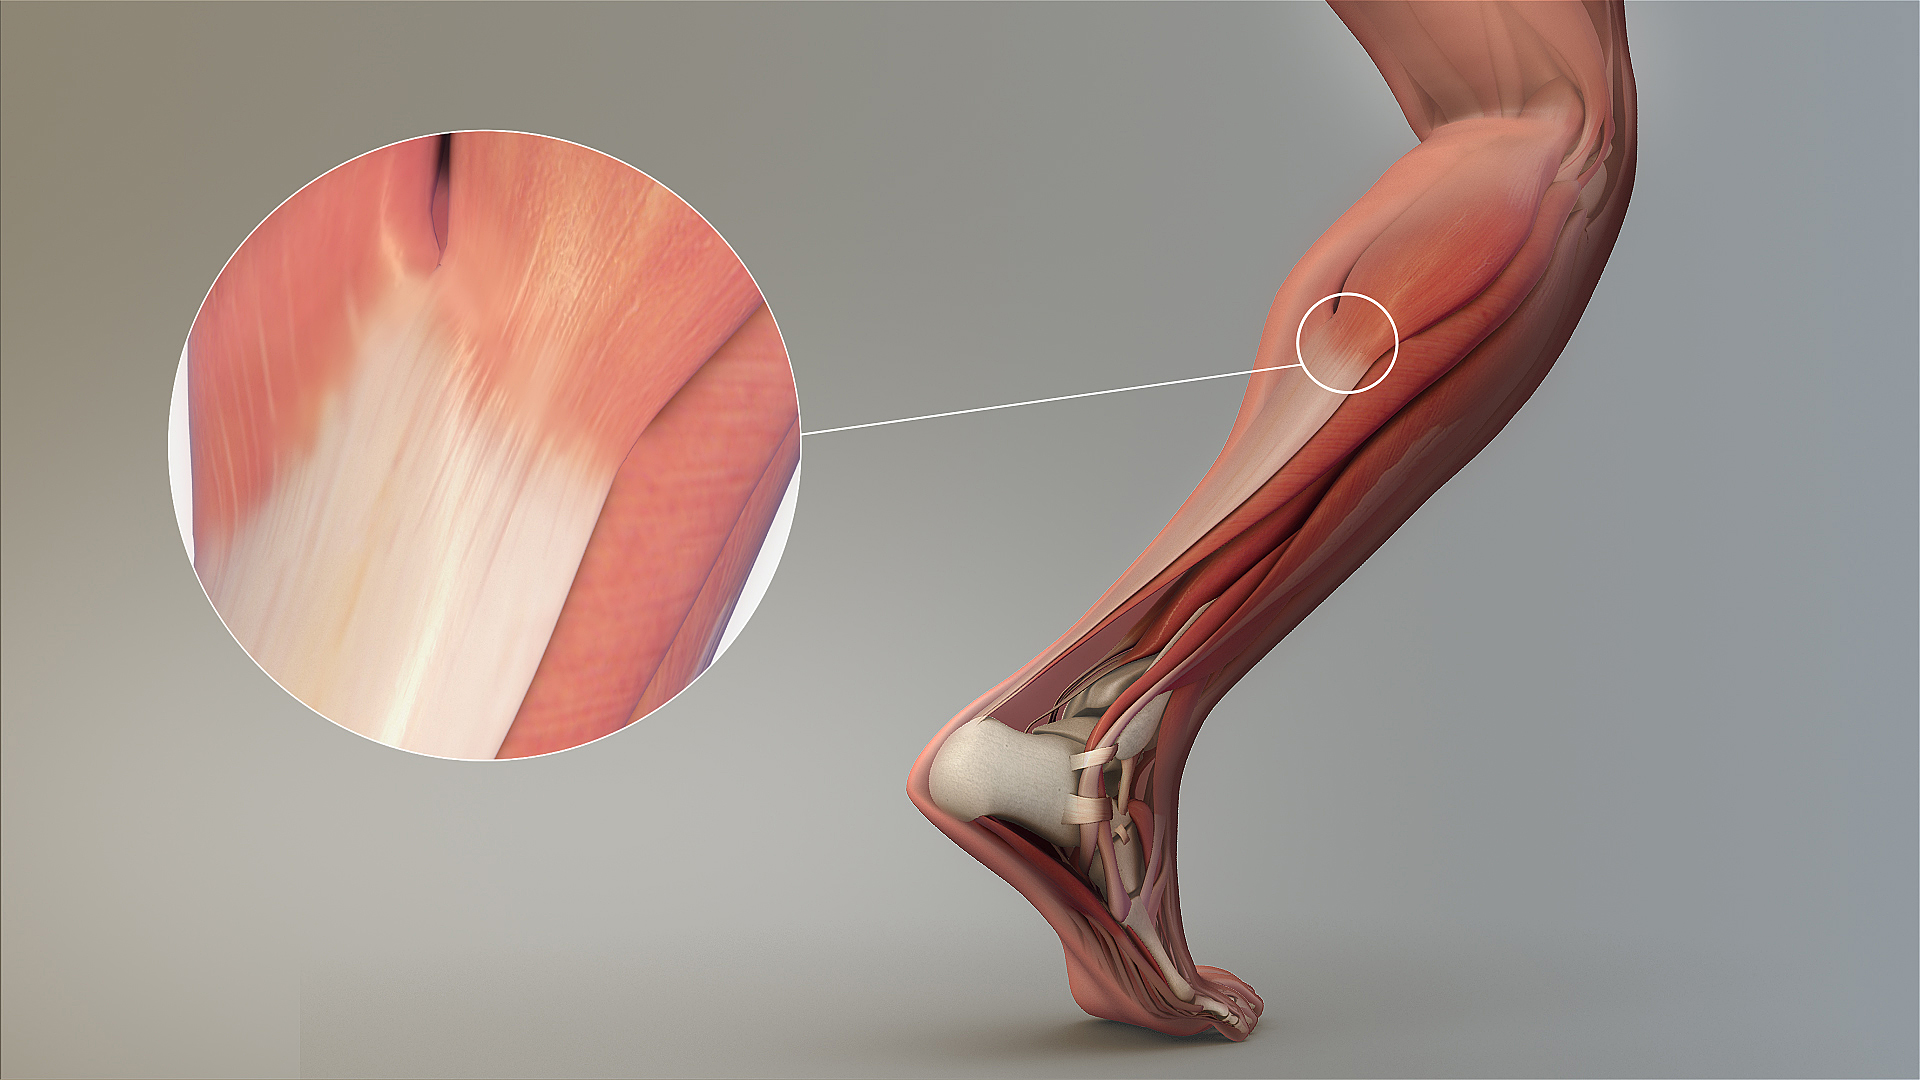 file magnified view of a tendon jpg wikimedia commons